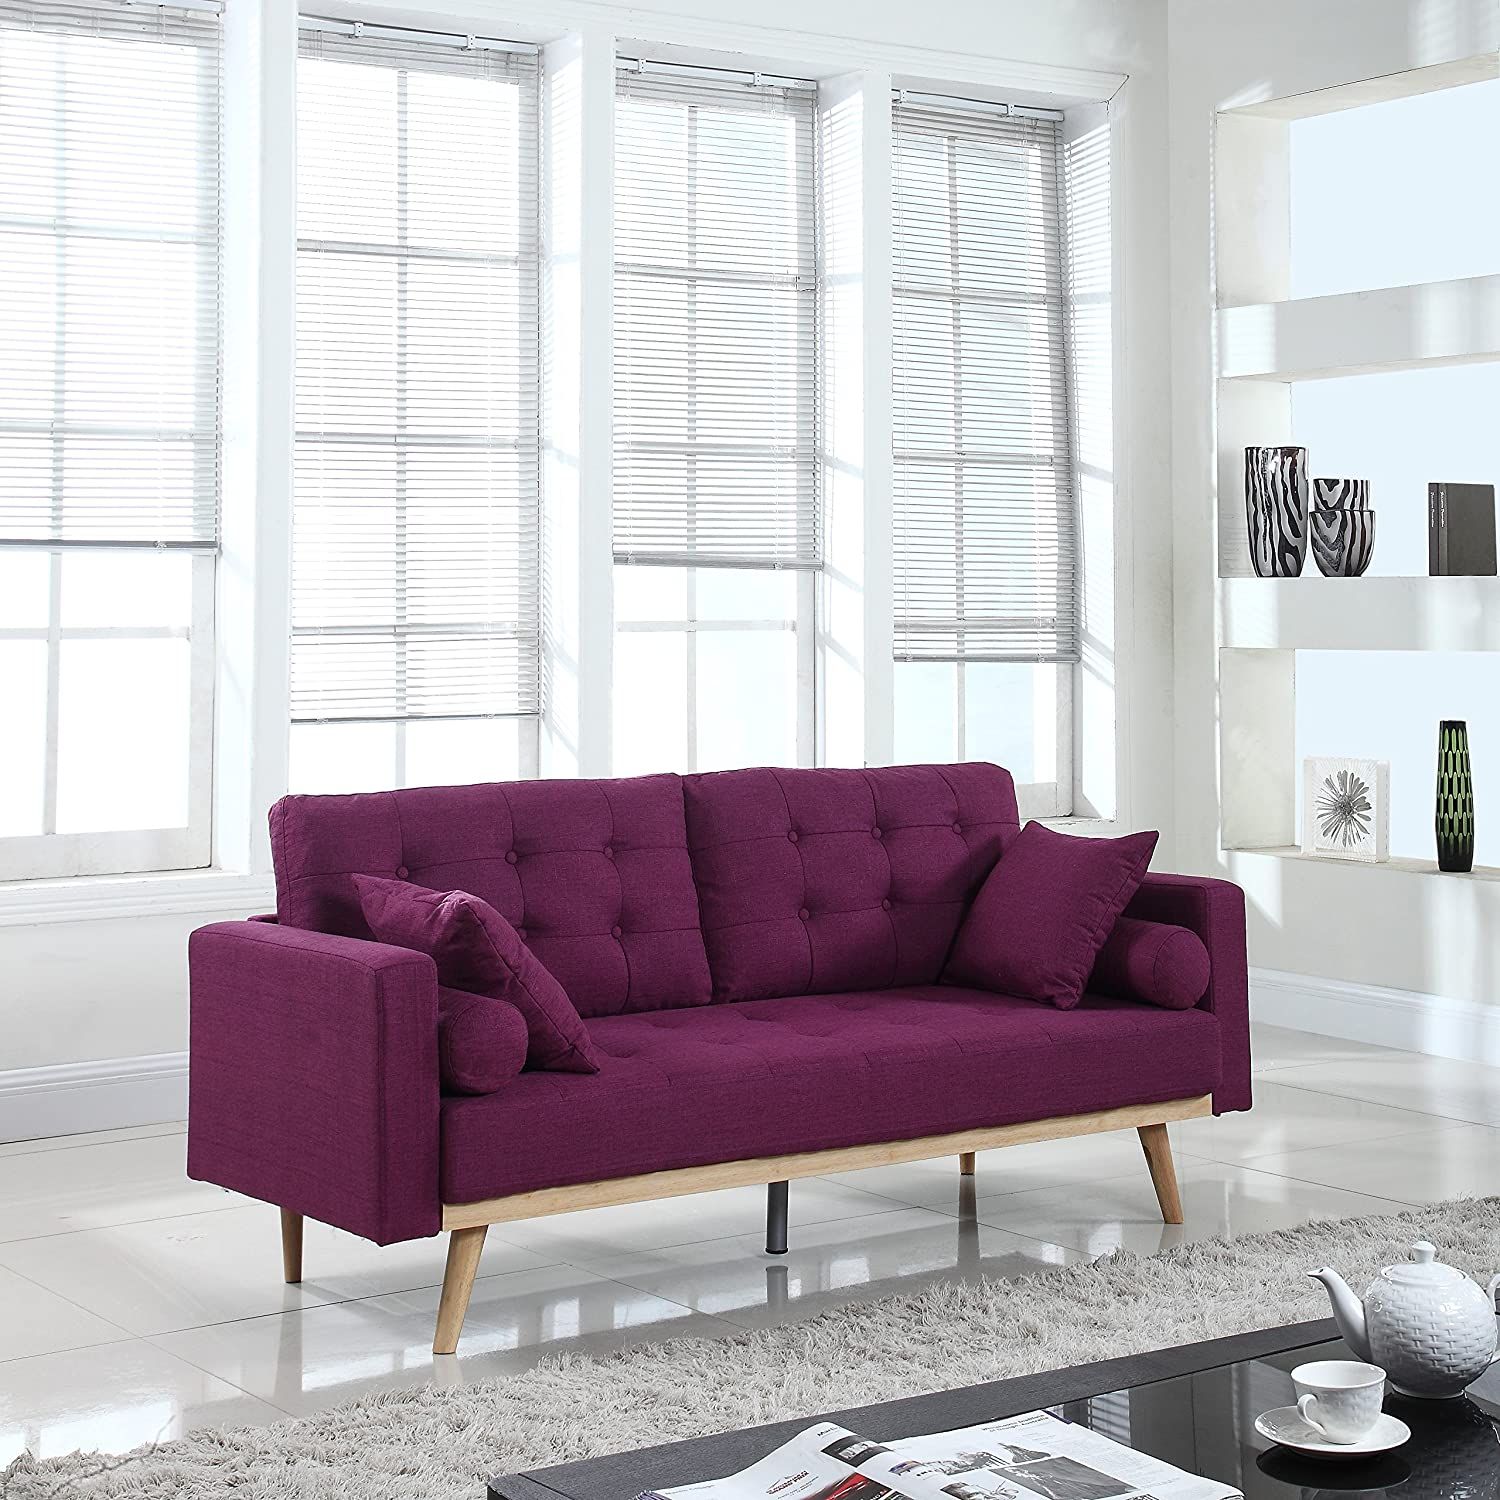 Amazon com divano roma furniture mid century modern tufted linen fabric sofa purple kitchen dining